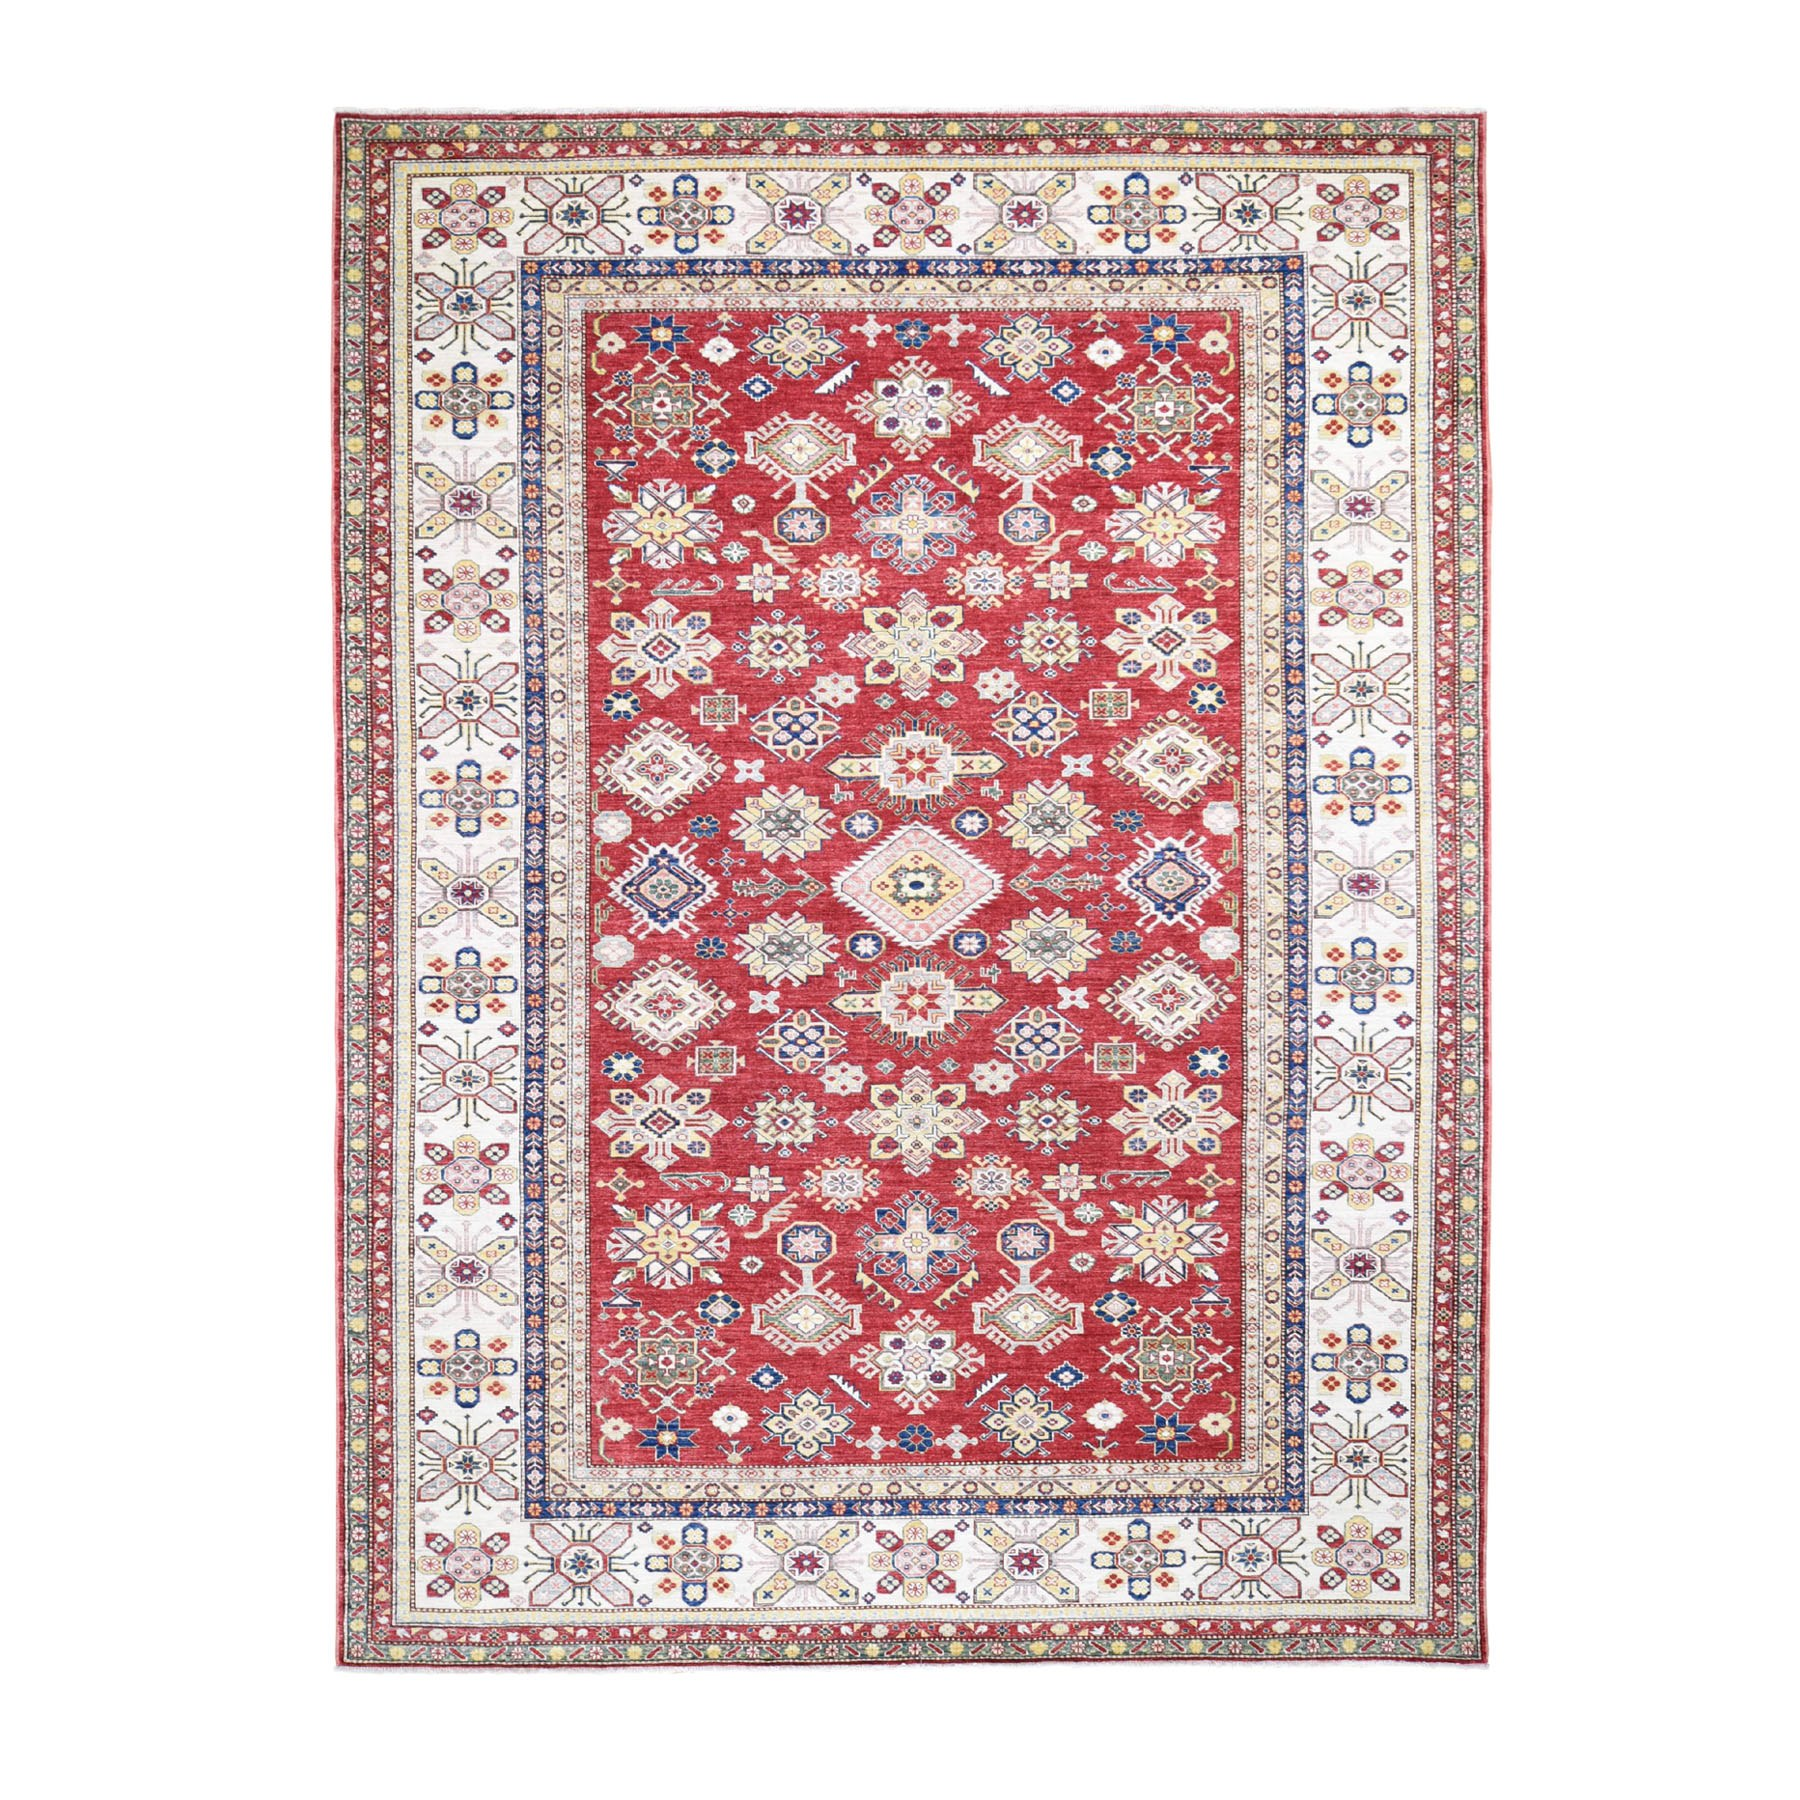 9'x12' Red Super Kazak Geometric Design Pure Wool Hand Knotted Oriental Rug